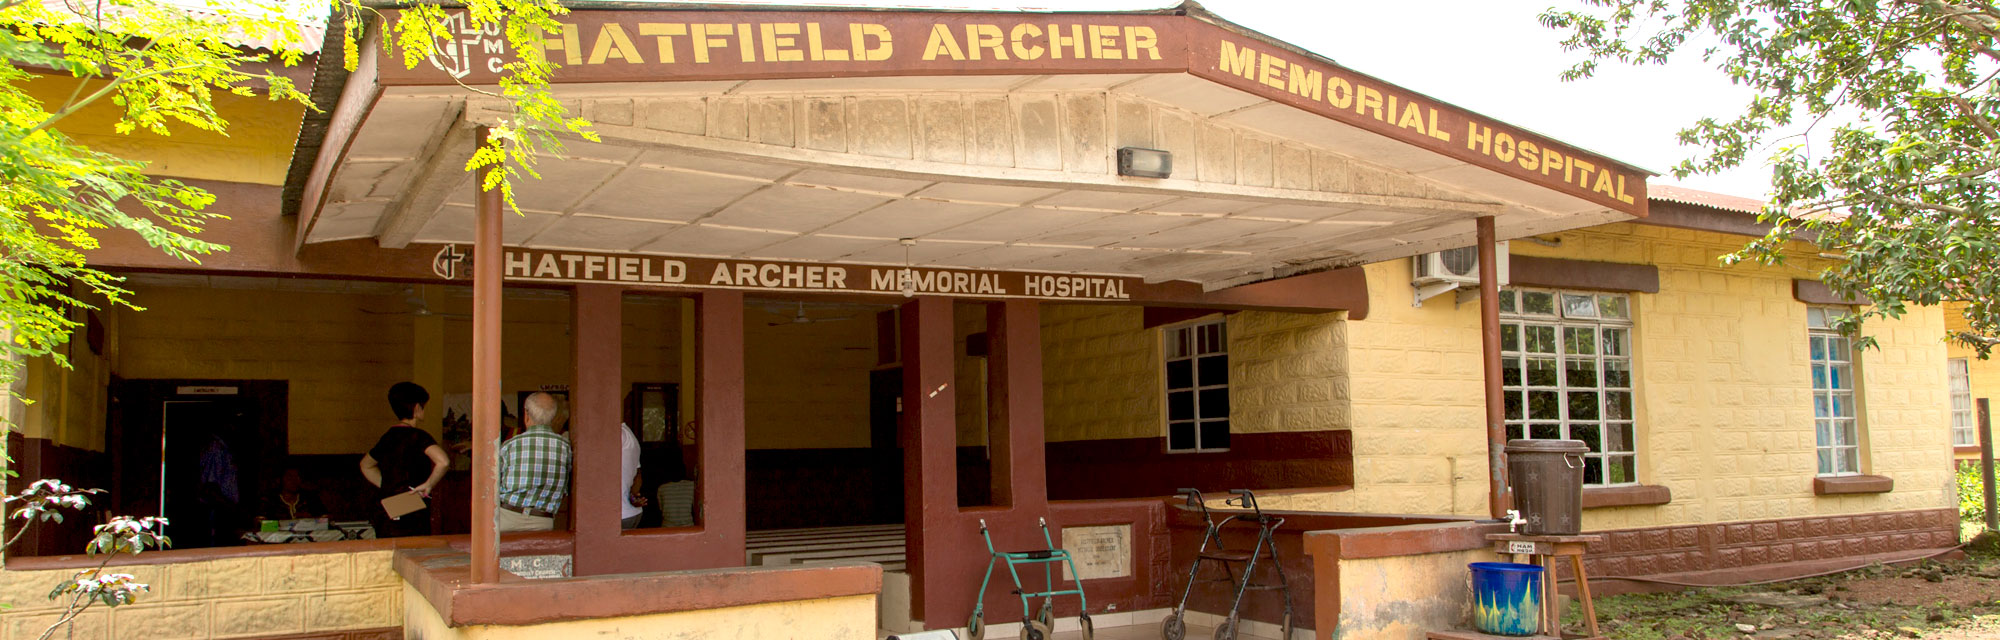 Hatfield-Archer-Memorial-Hospital-Rotifunk-Sierra-Leone